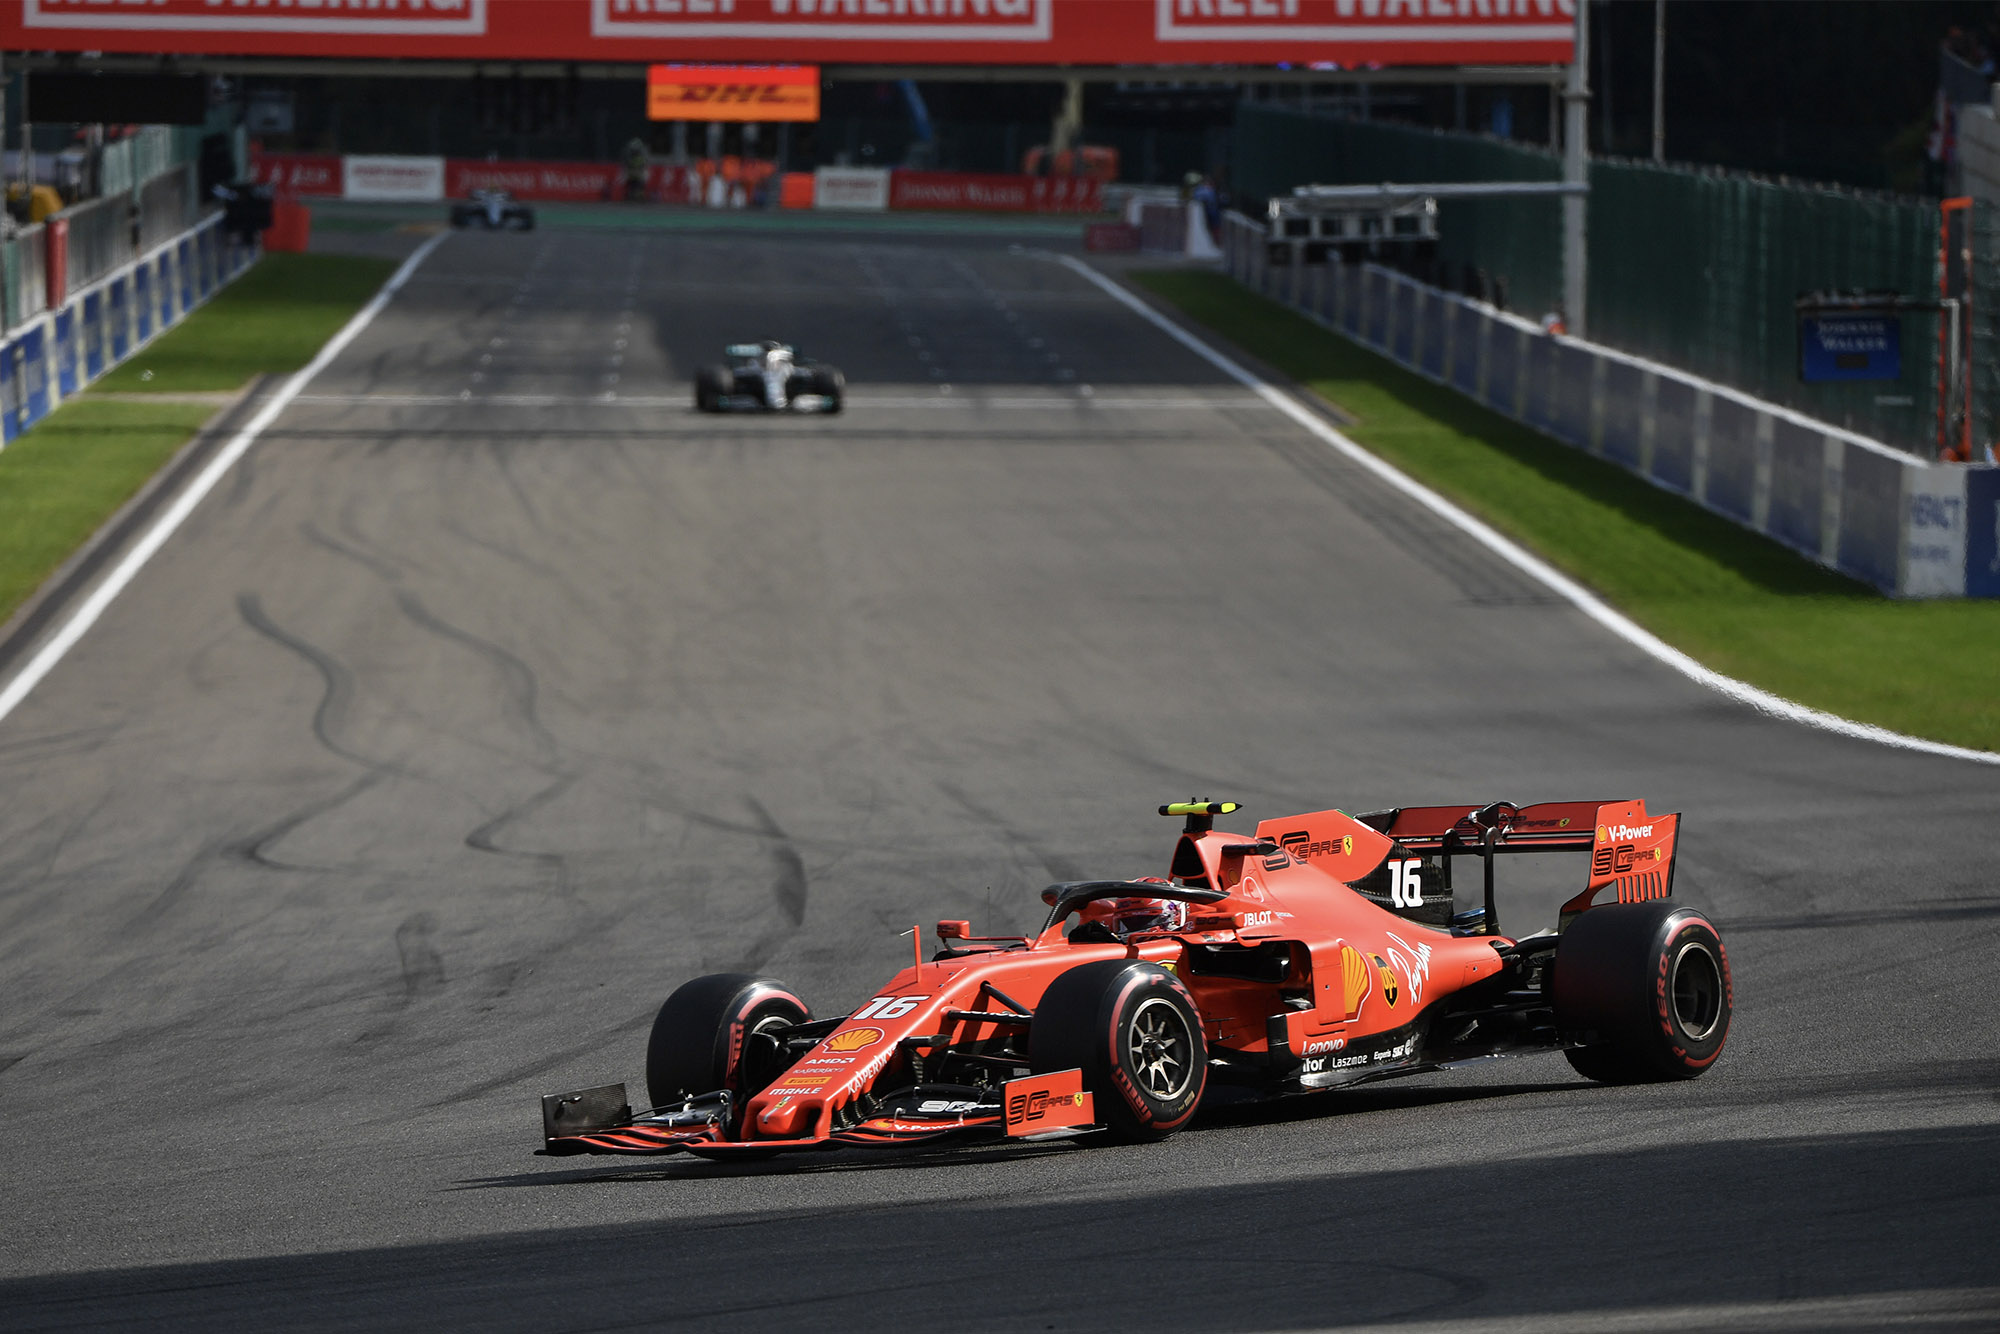 Charles Leclerc and Lewis Hamilton during the 2019 Belgian Grand Prix